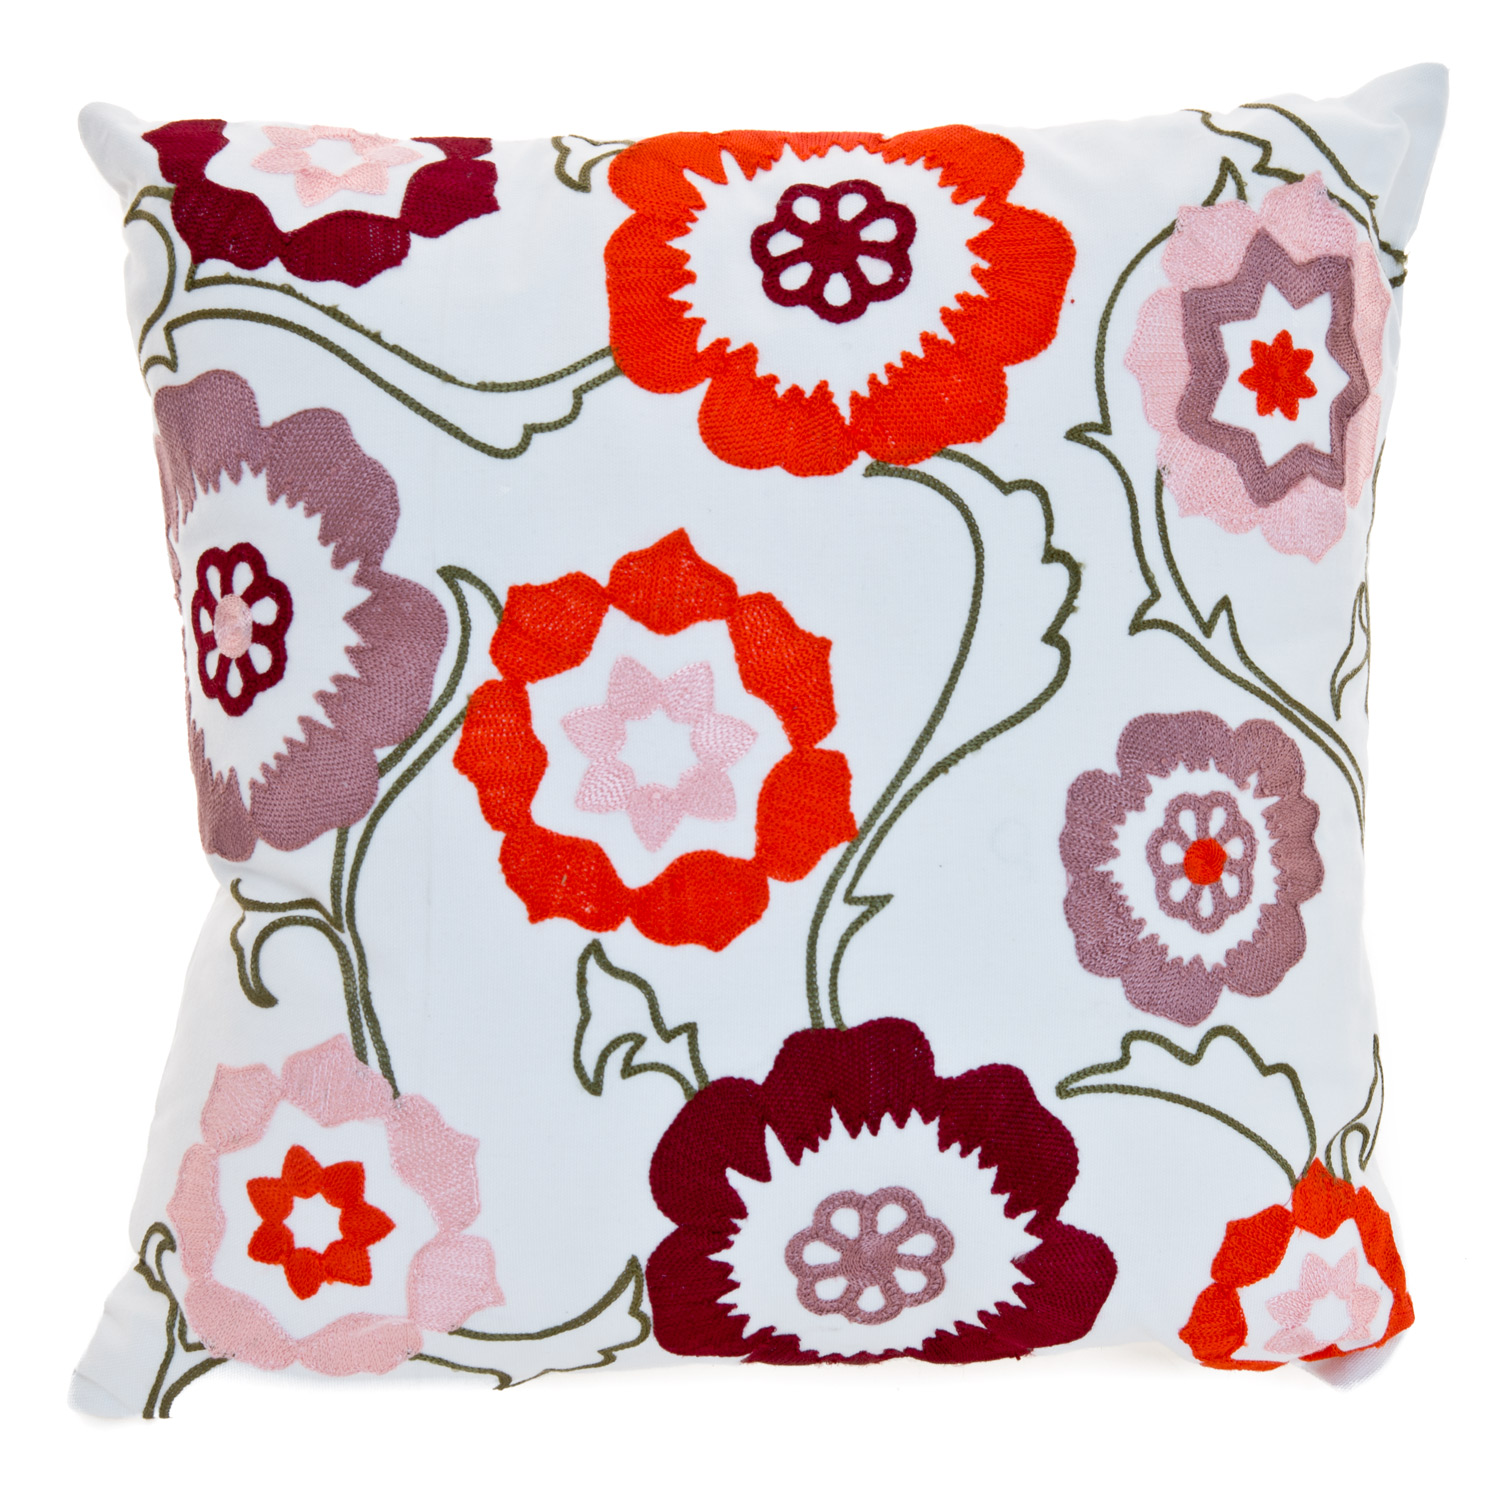 Image of Casa Fancy Floral Embroidered Cushion